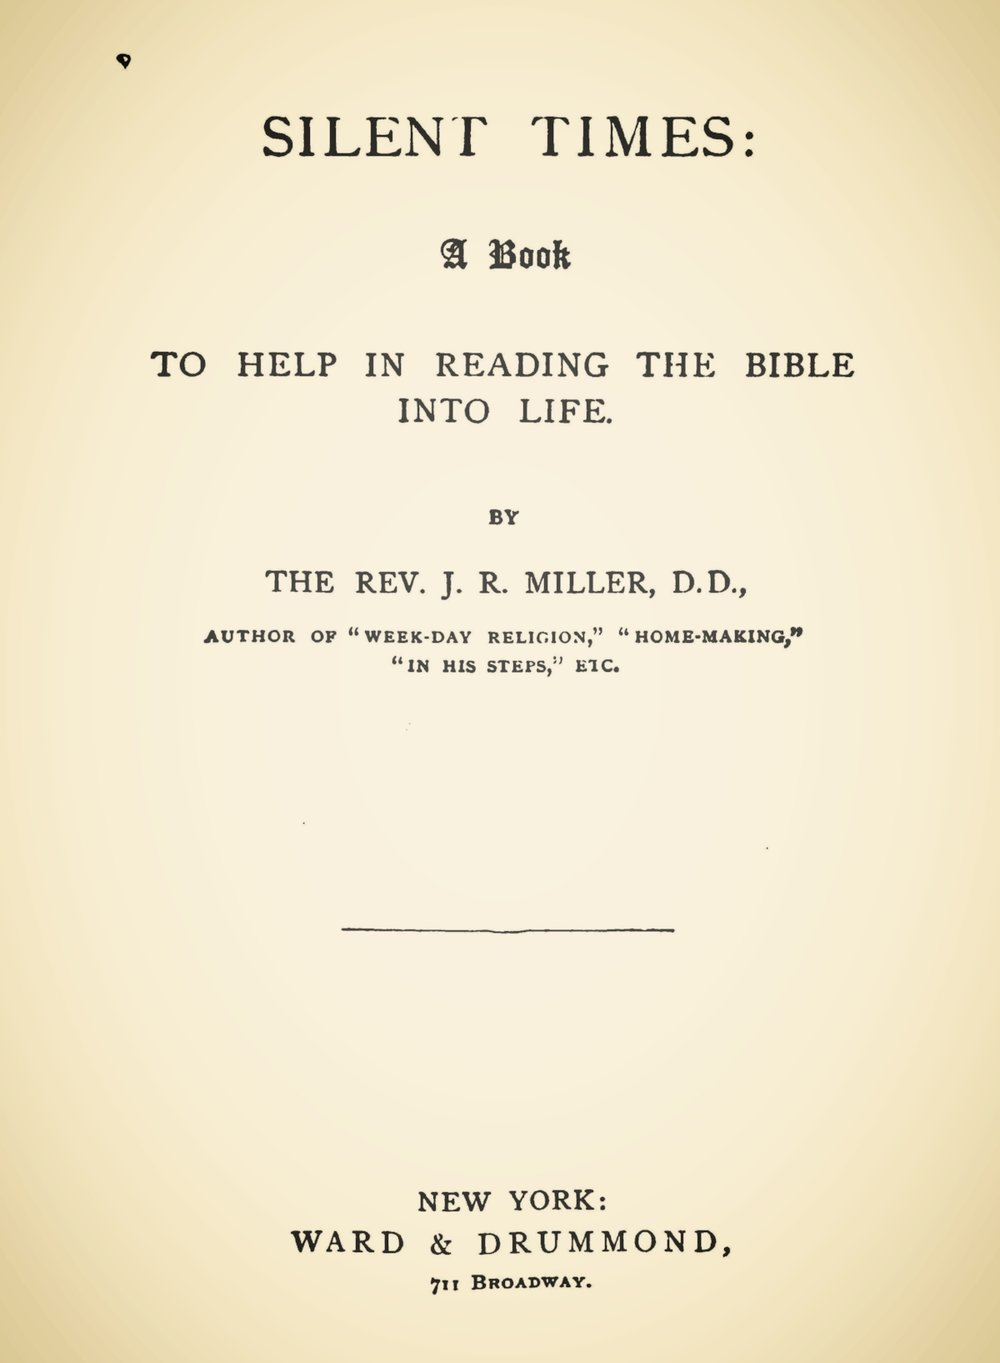 Miller, James Russell, Silent Times Title Page.jpg